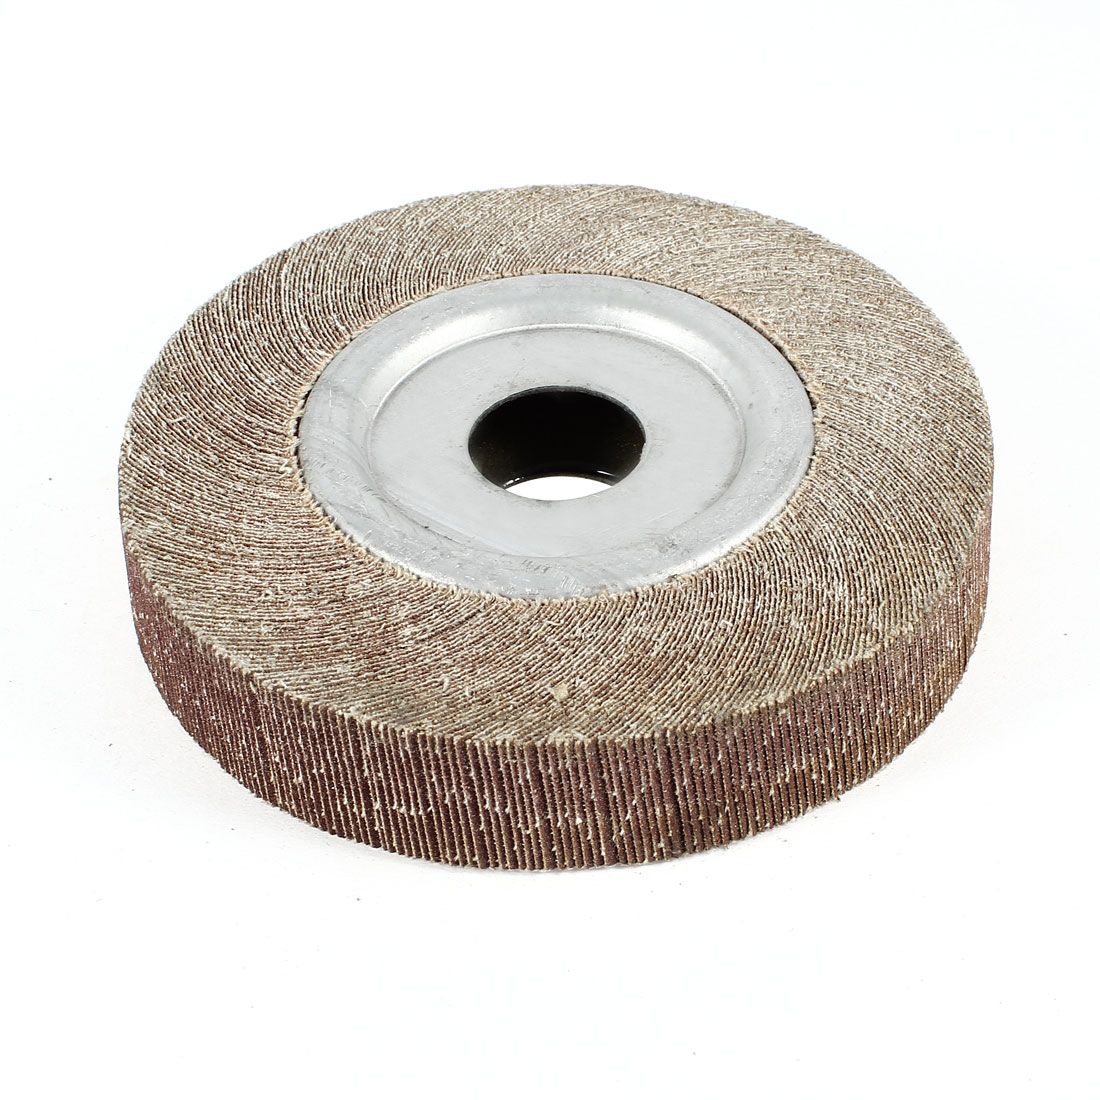 125mm x 25mm x 24mm Double Sides Abrasive Flap Sanding Disc Polish Wheel